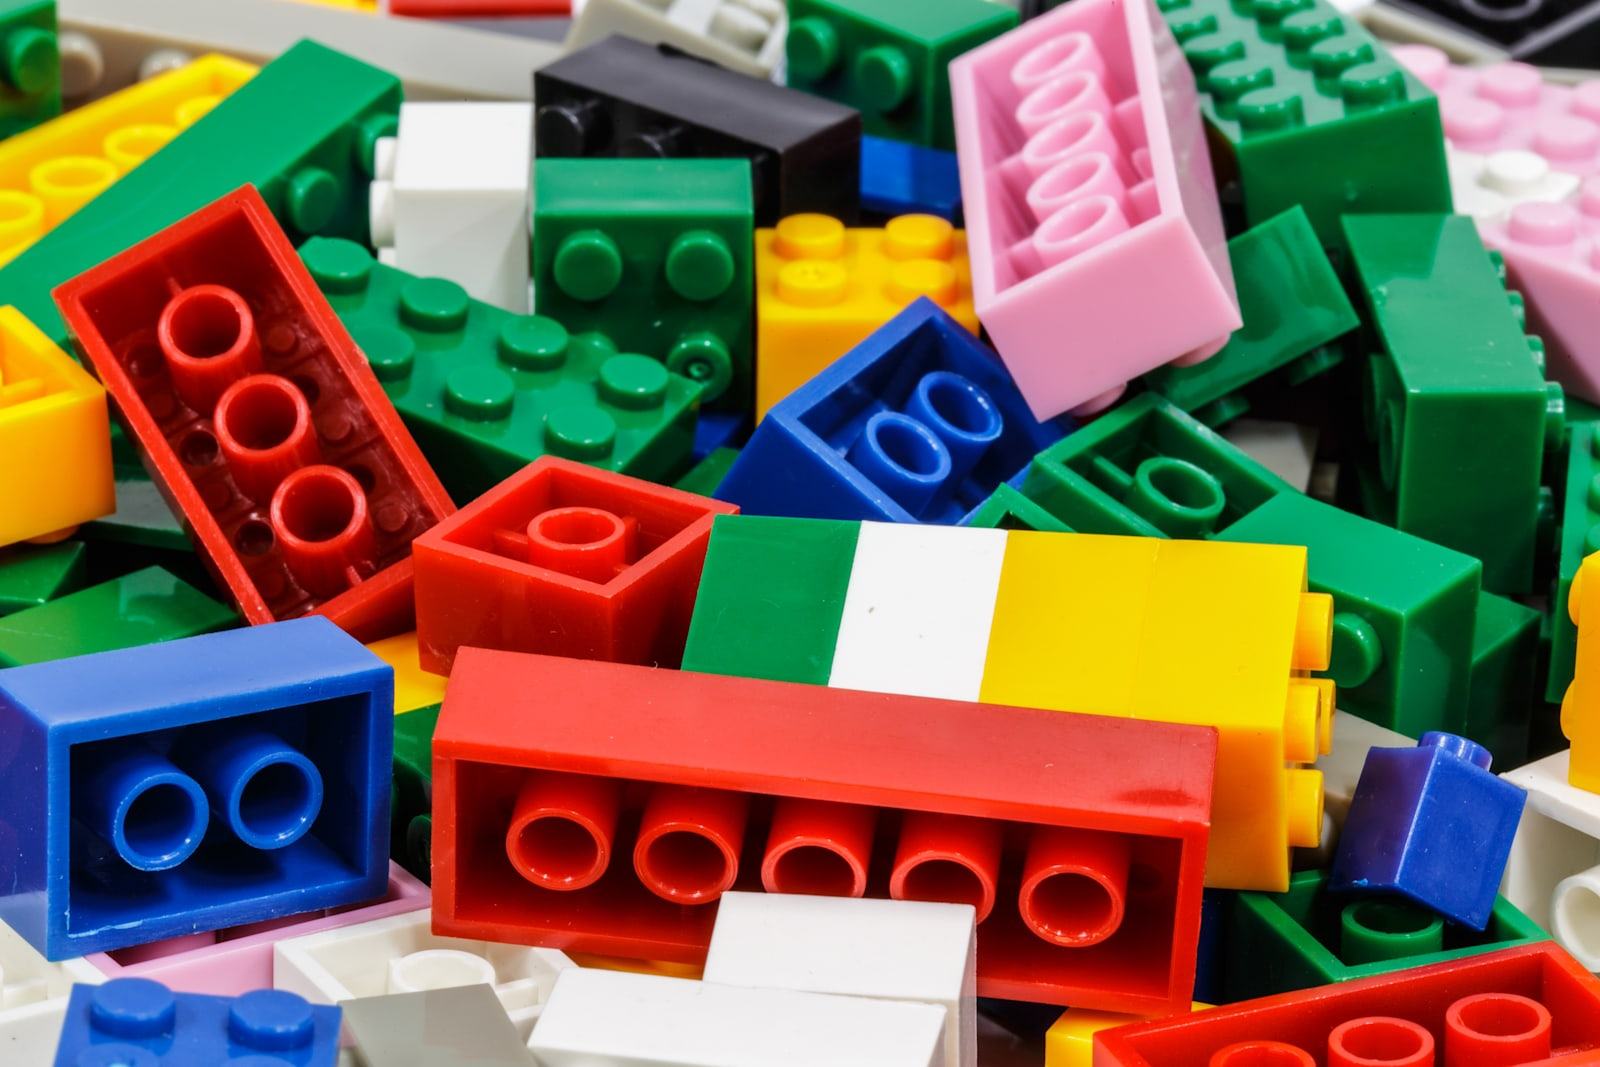 Lego Like Toys : Scientists can build lab tools using these lego like blocks